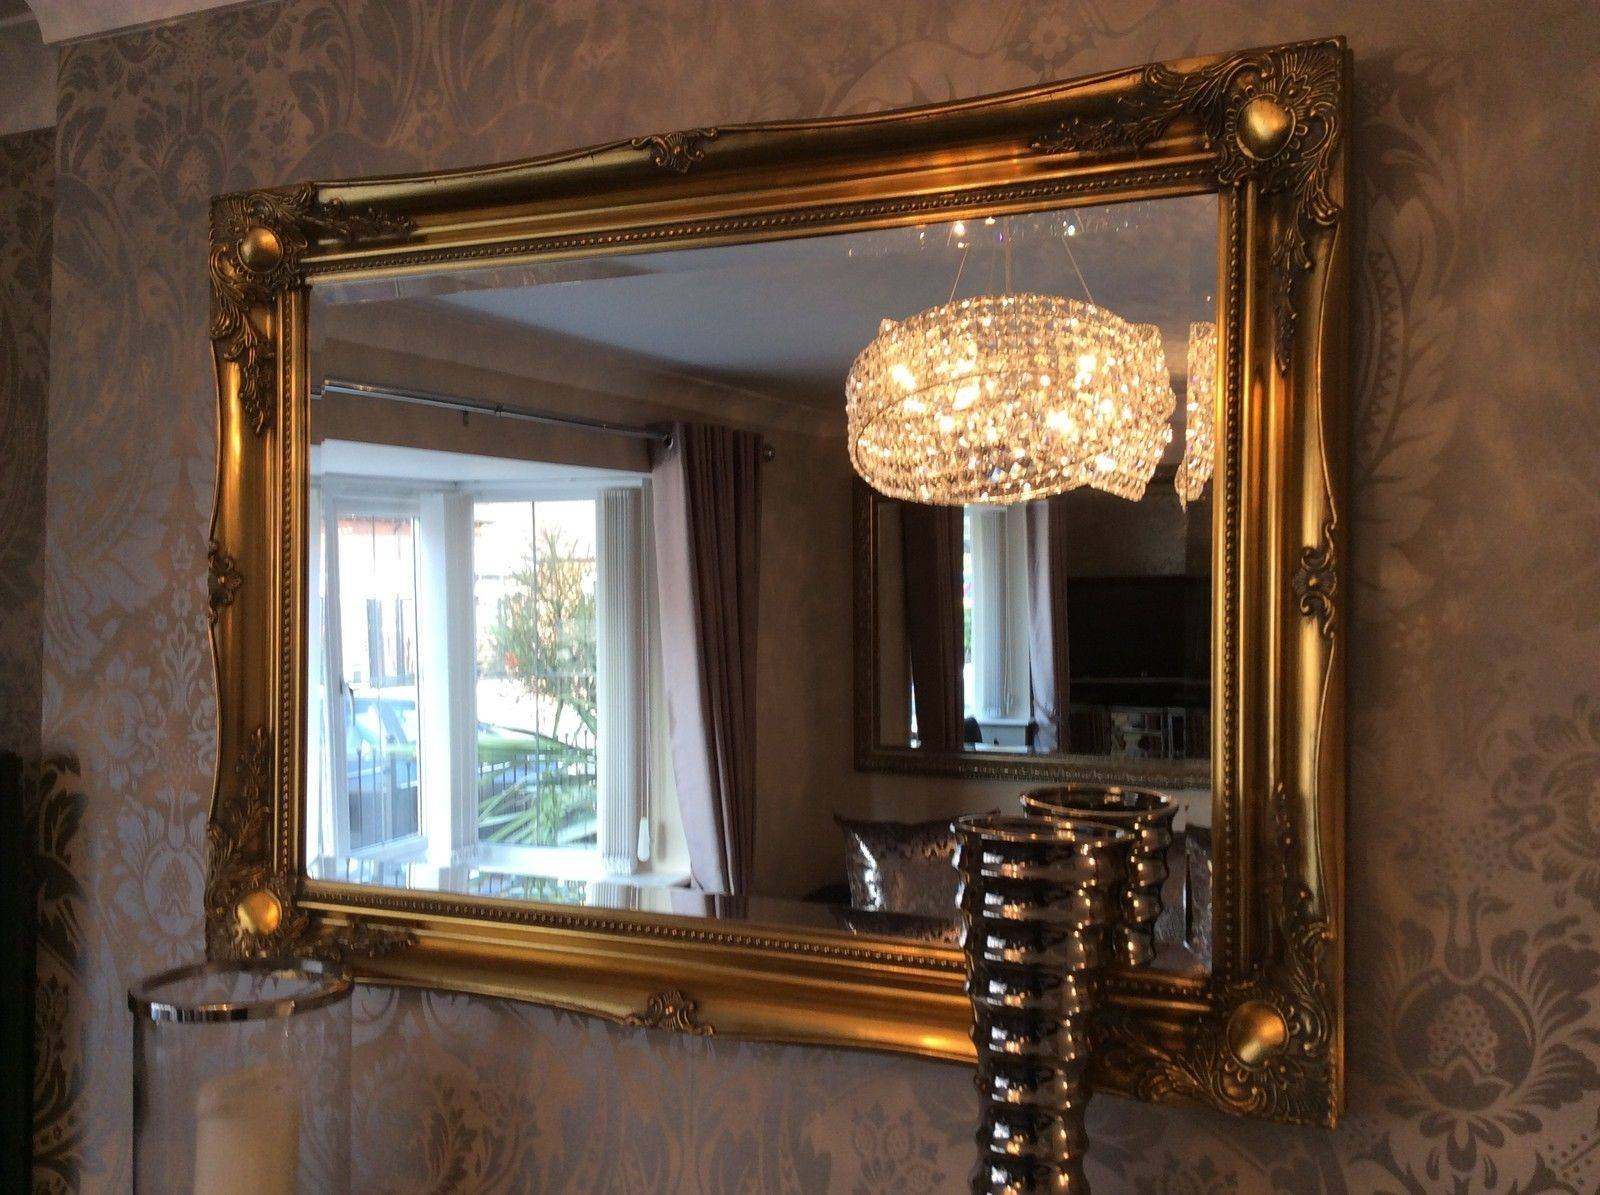 Decorative Gold Mirrors. Gold Decorative Framed Bevelled Wall with Antique Cream Mirrors (Image 13 of 25)